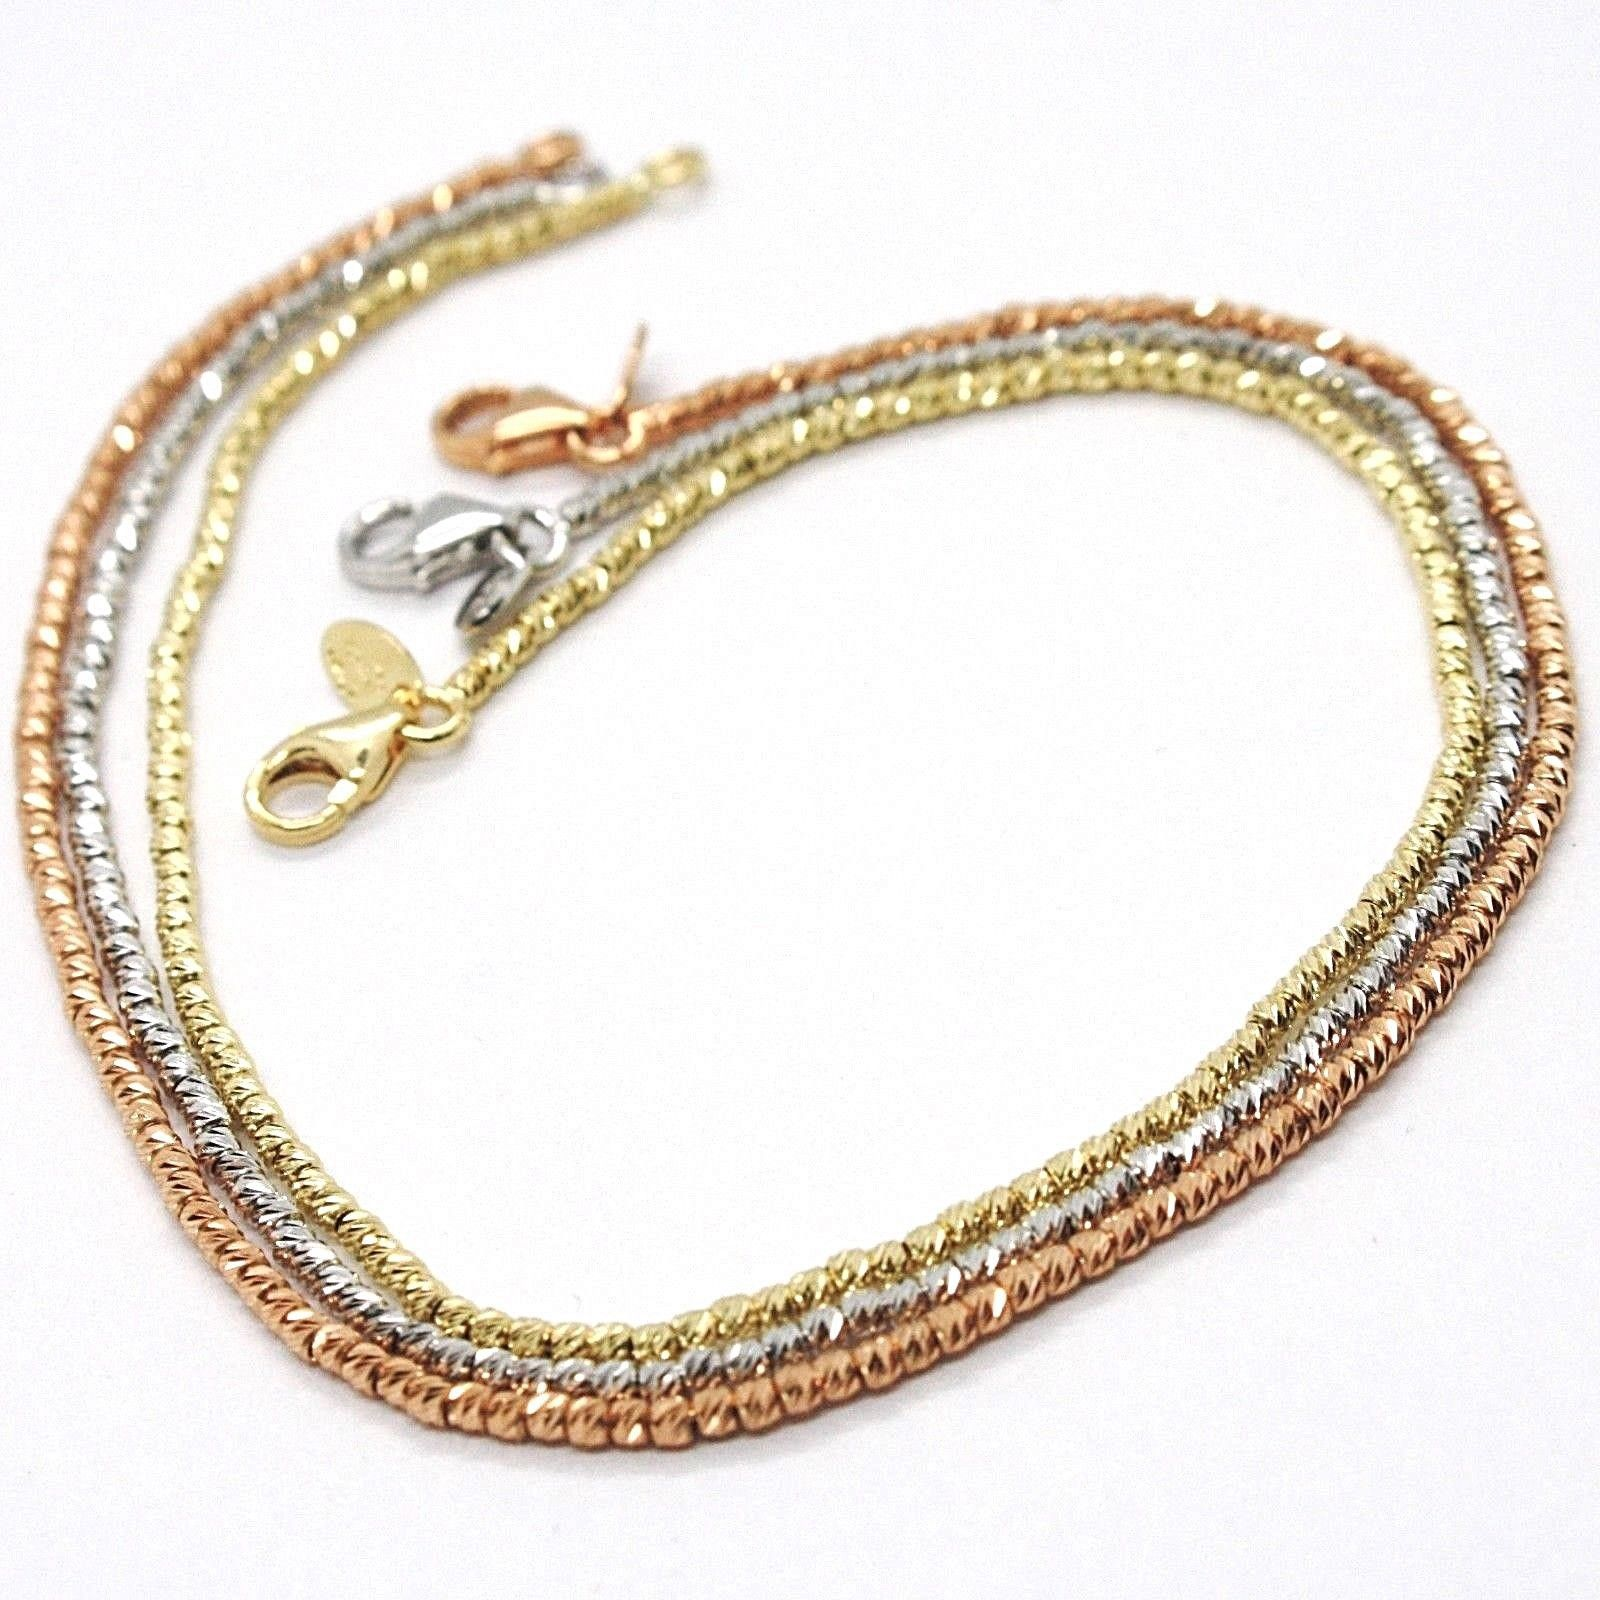 3 18K ROSE WHITE YELLOW GOLD BRACELETS, DIAMOND CUT BALLS 1.5 MM, TRIPLE WORKED